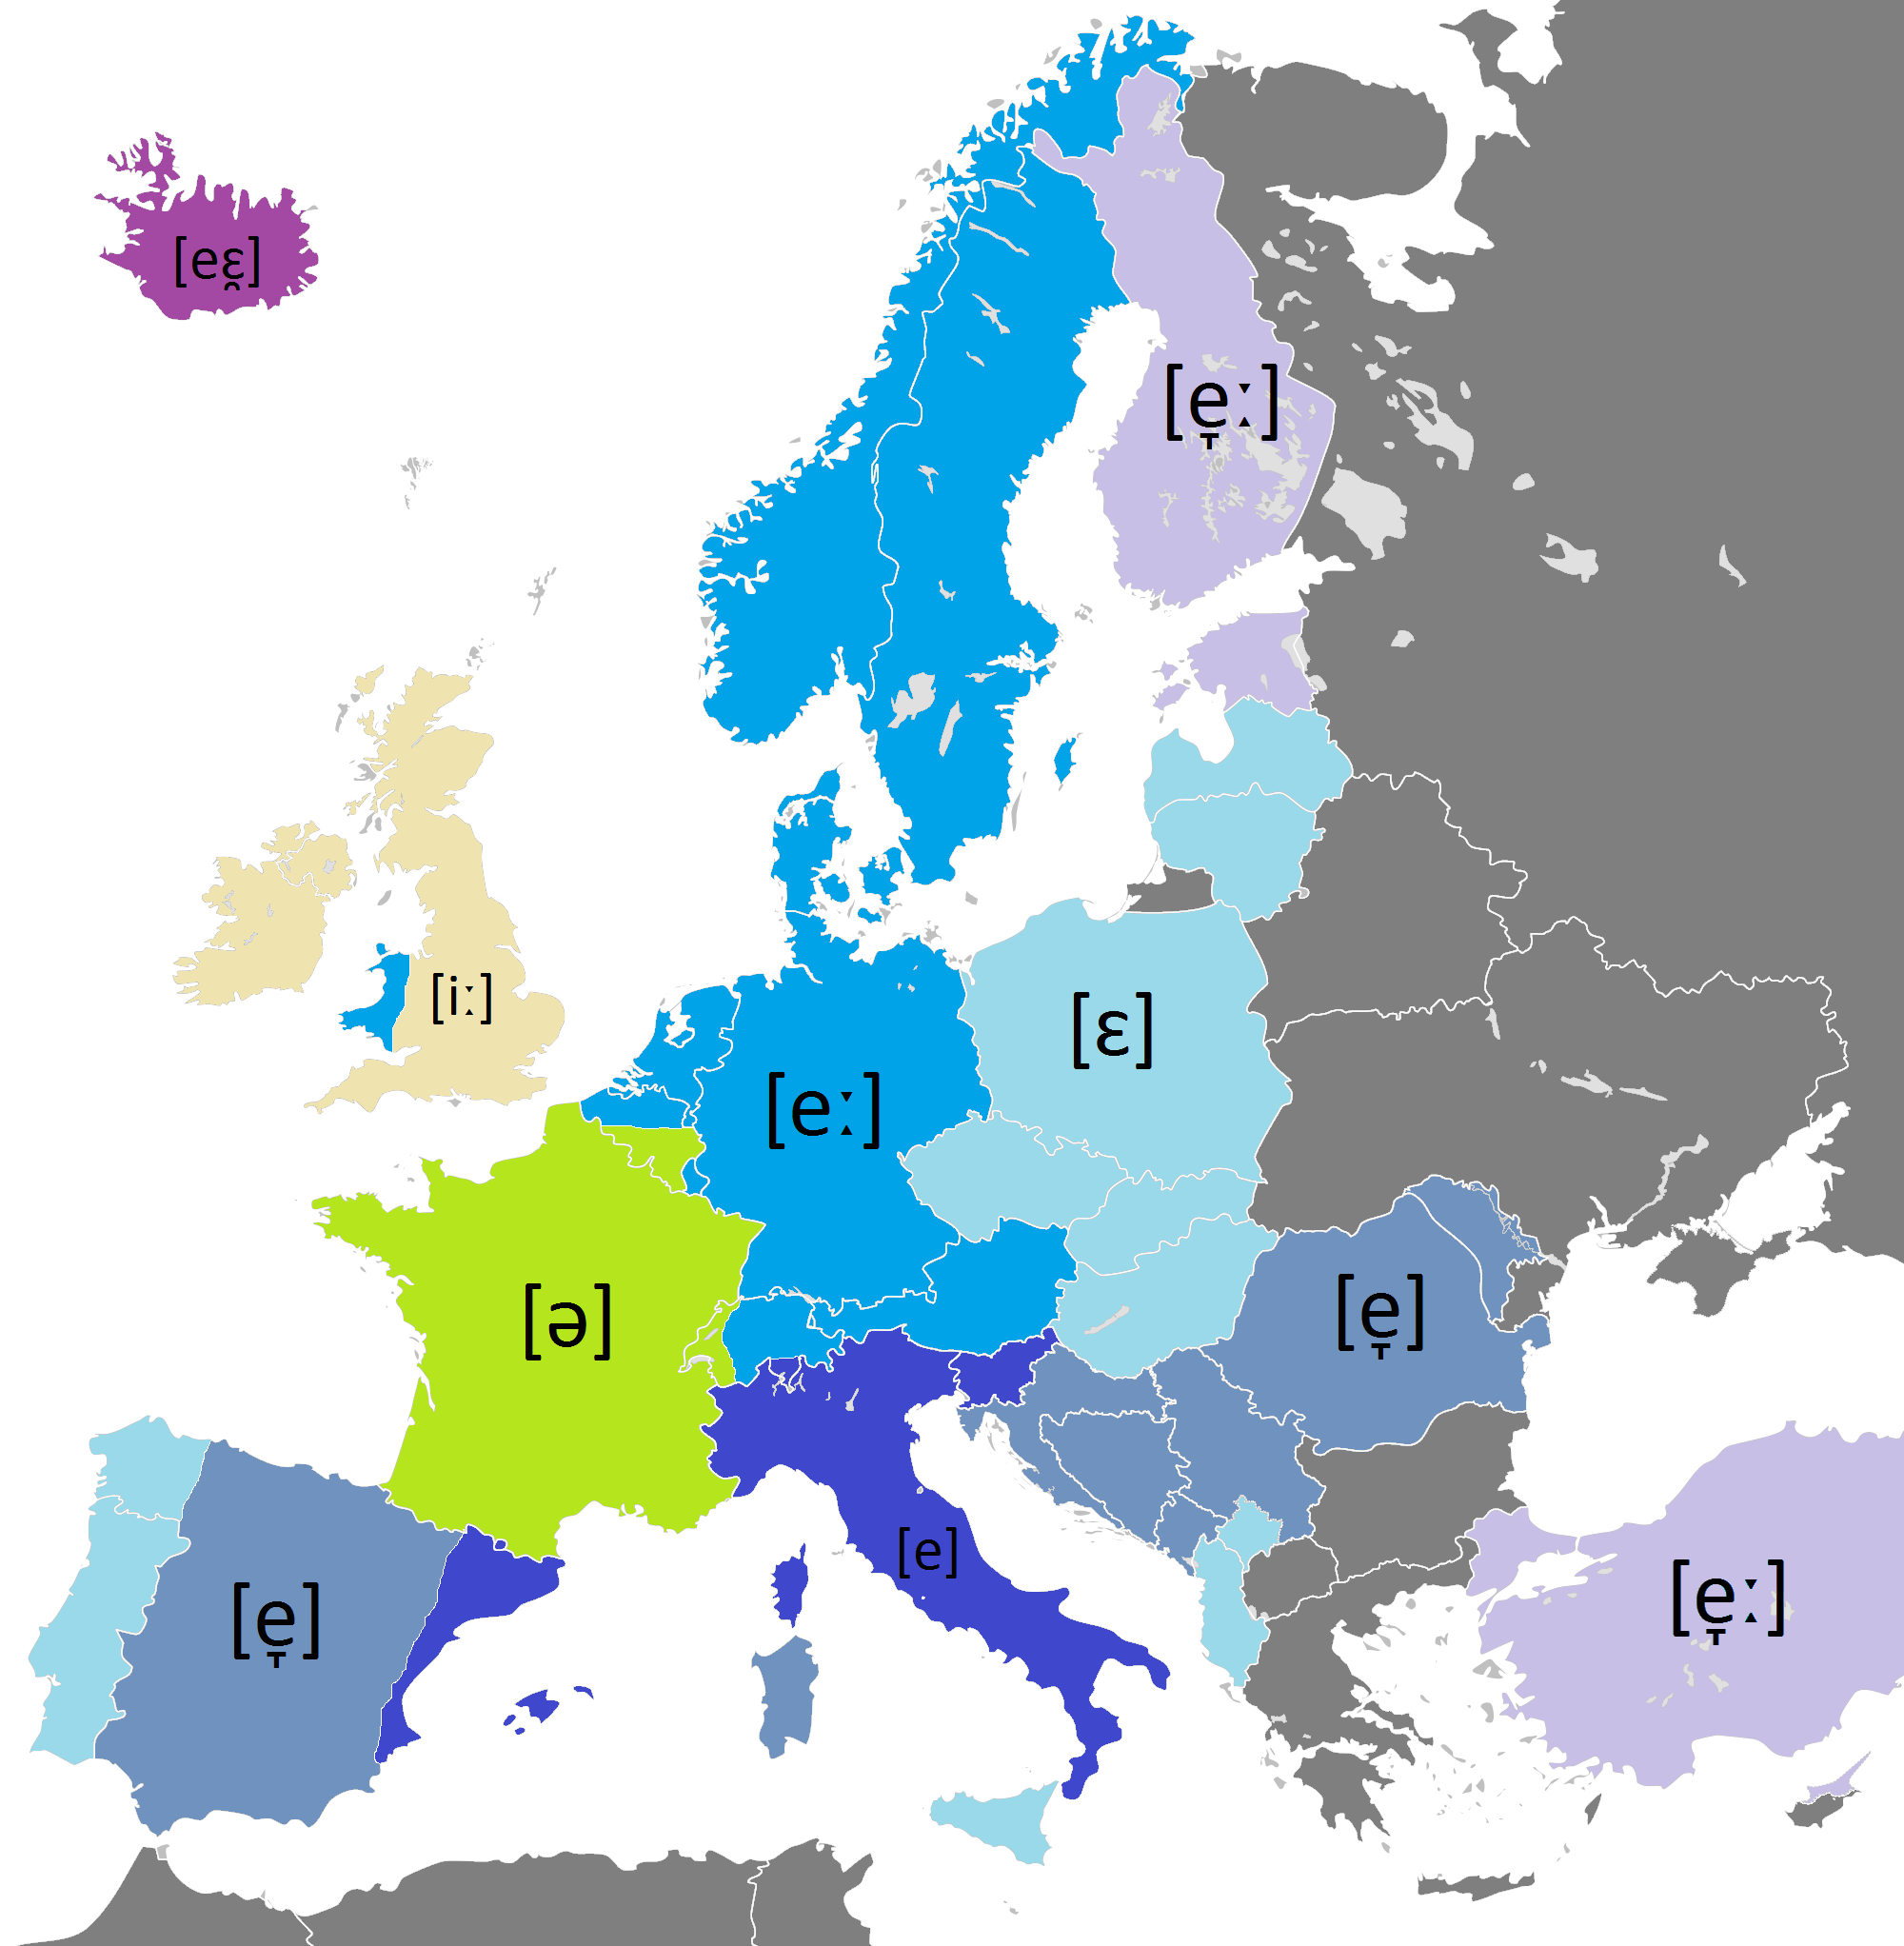 pronunciation of the name of the letter e in european languages